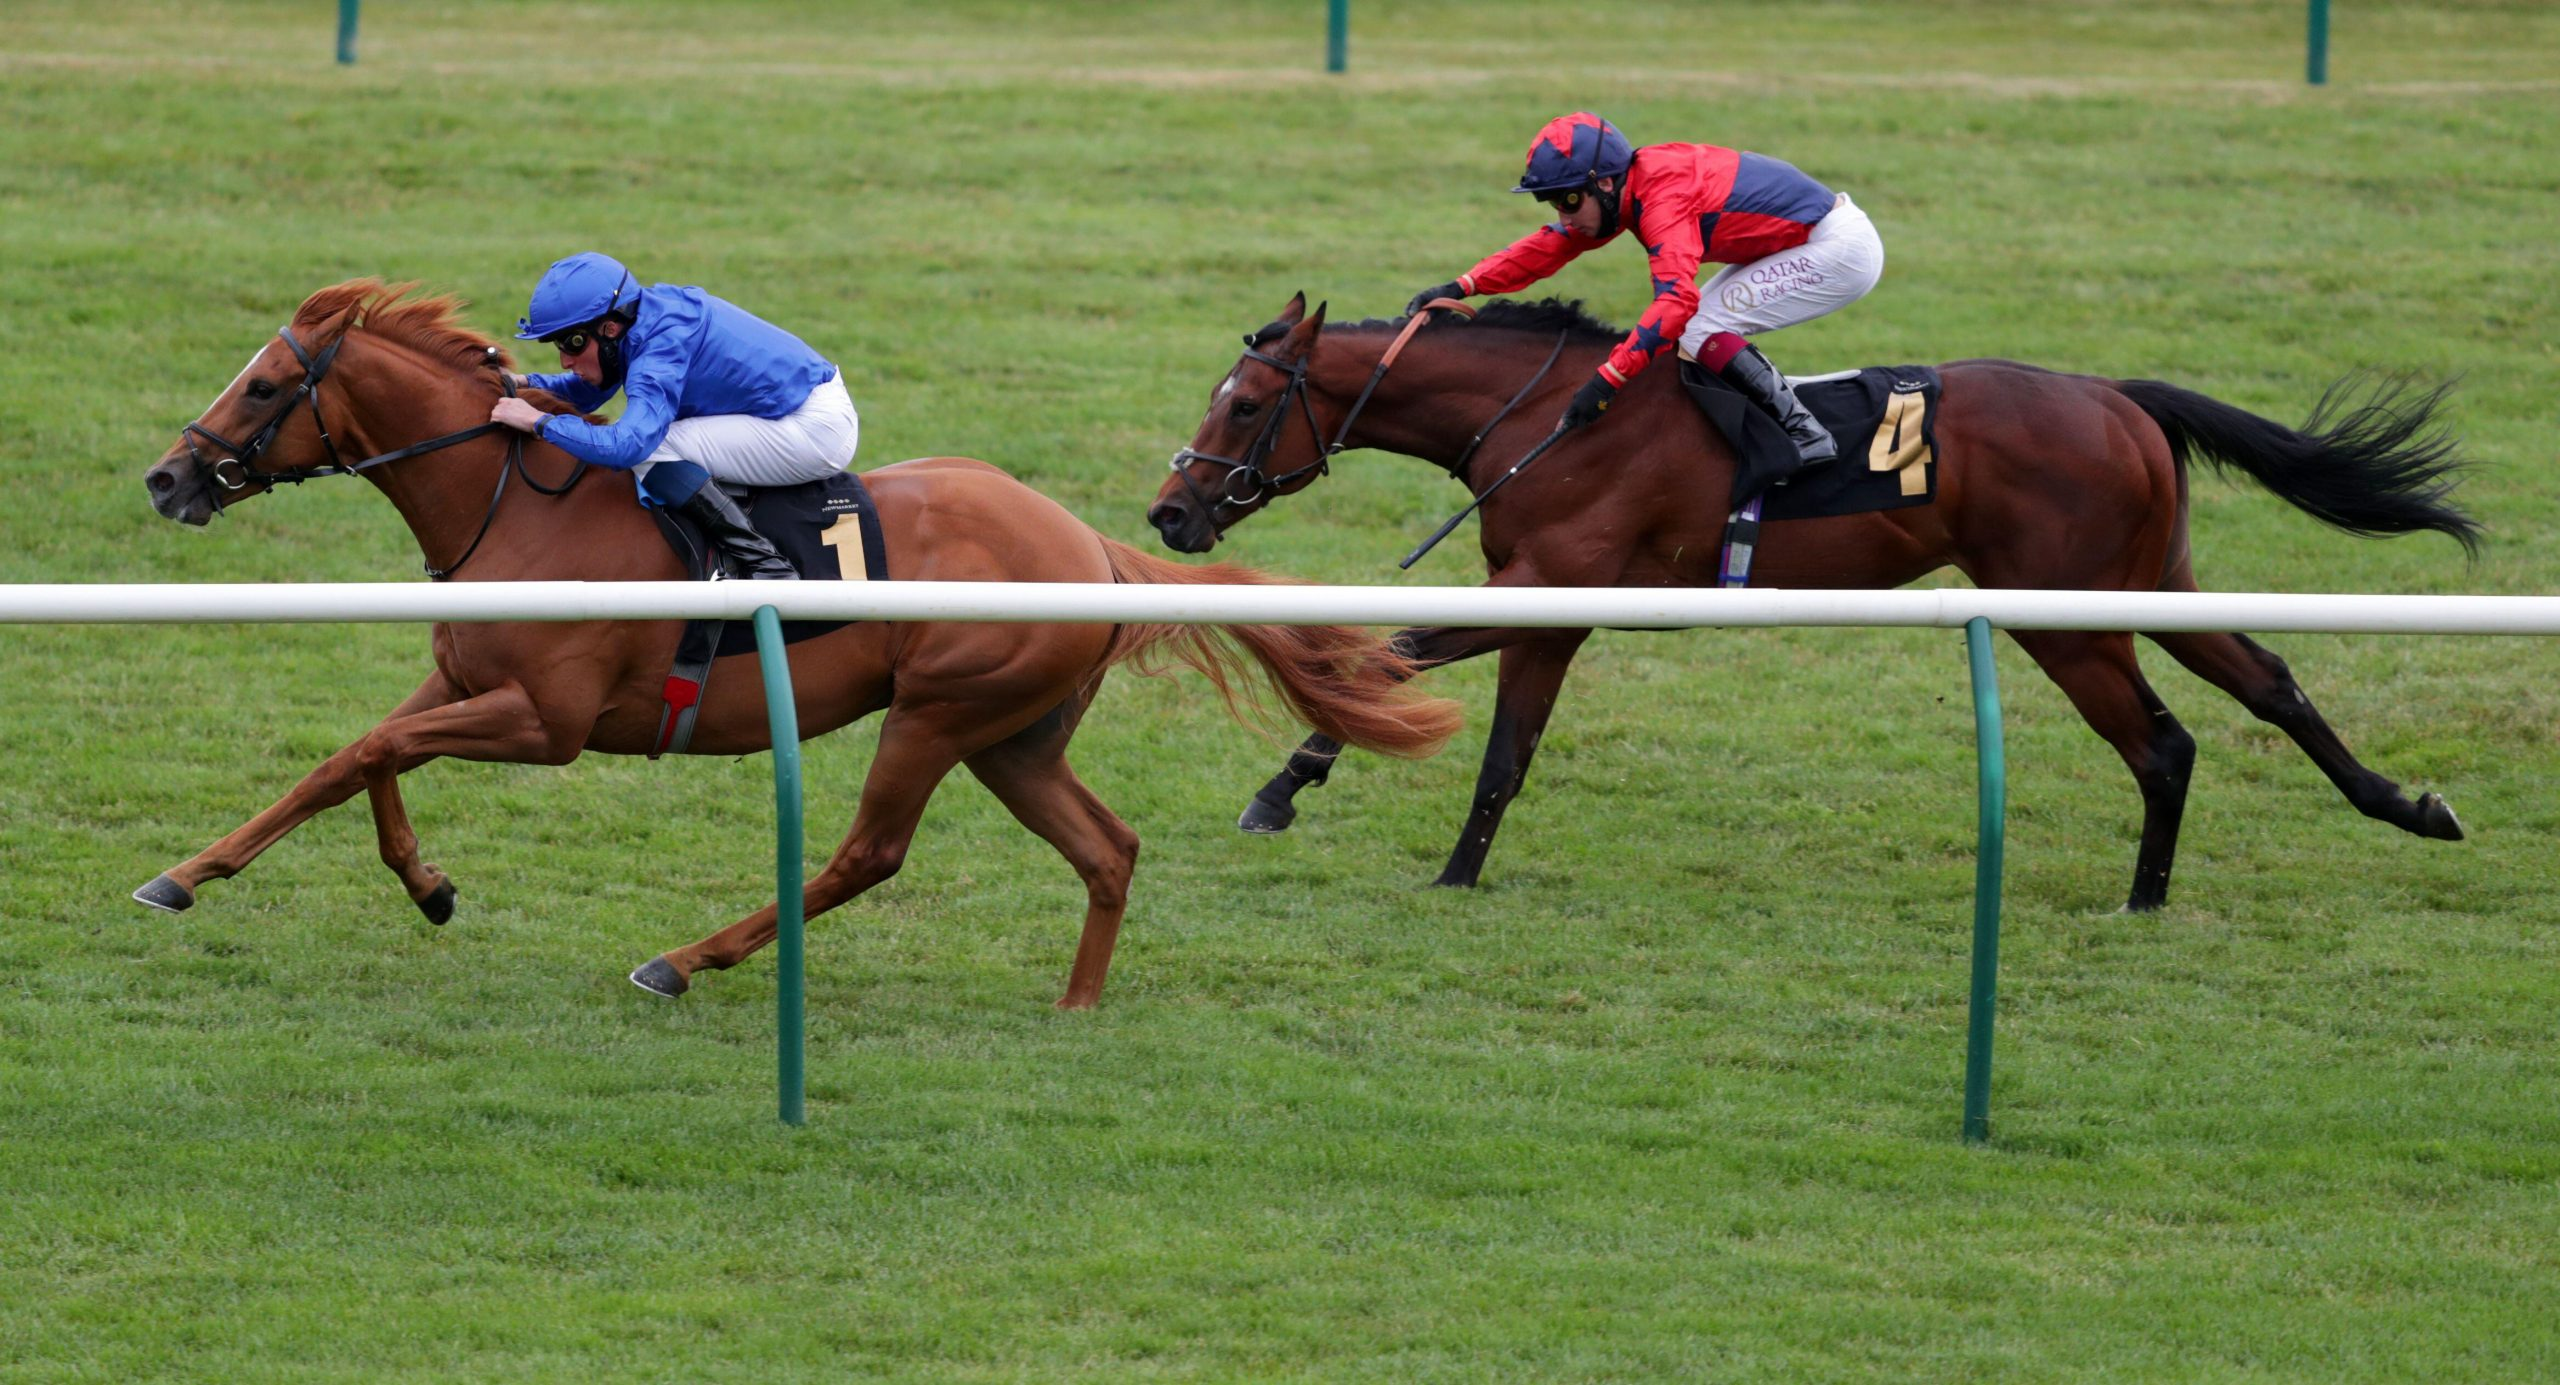 2BX1M5G Creative Force ridden by William Buick (left) wins the Betway Maiden Stakes (Div 2) at Newmarket Racecourse.